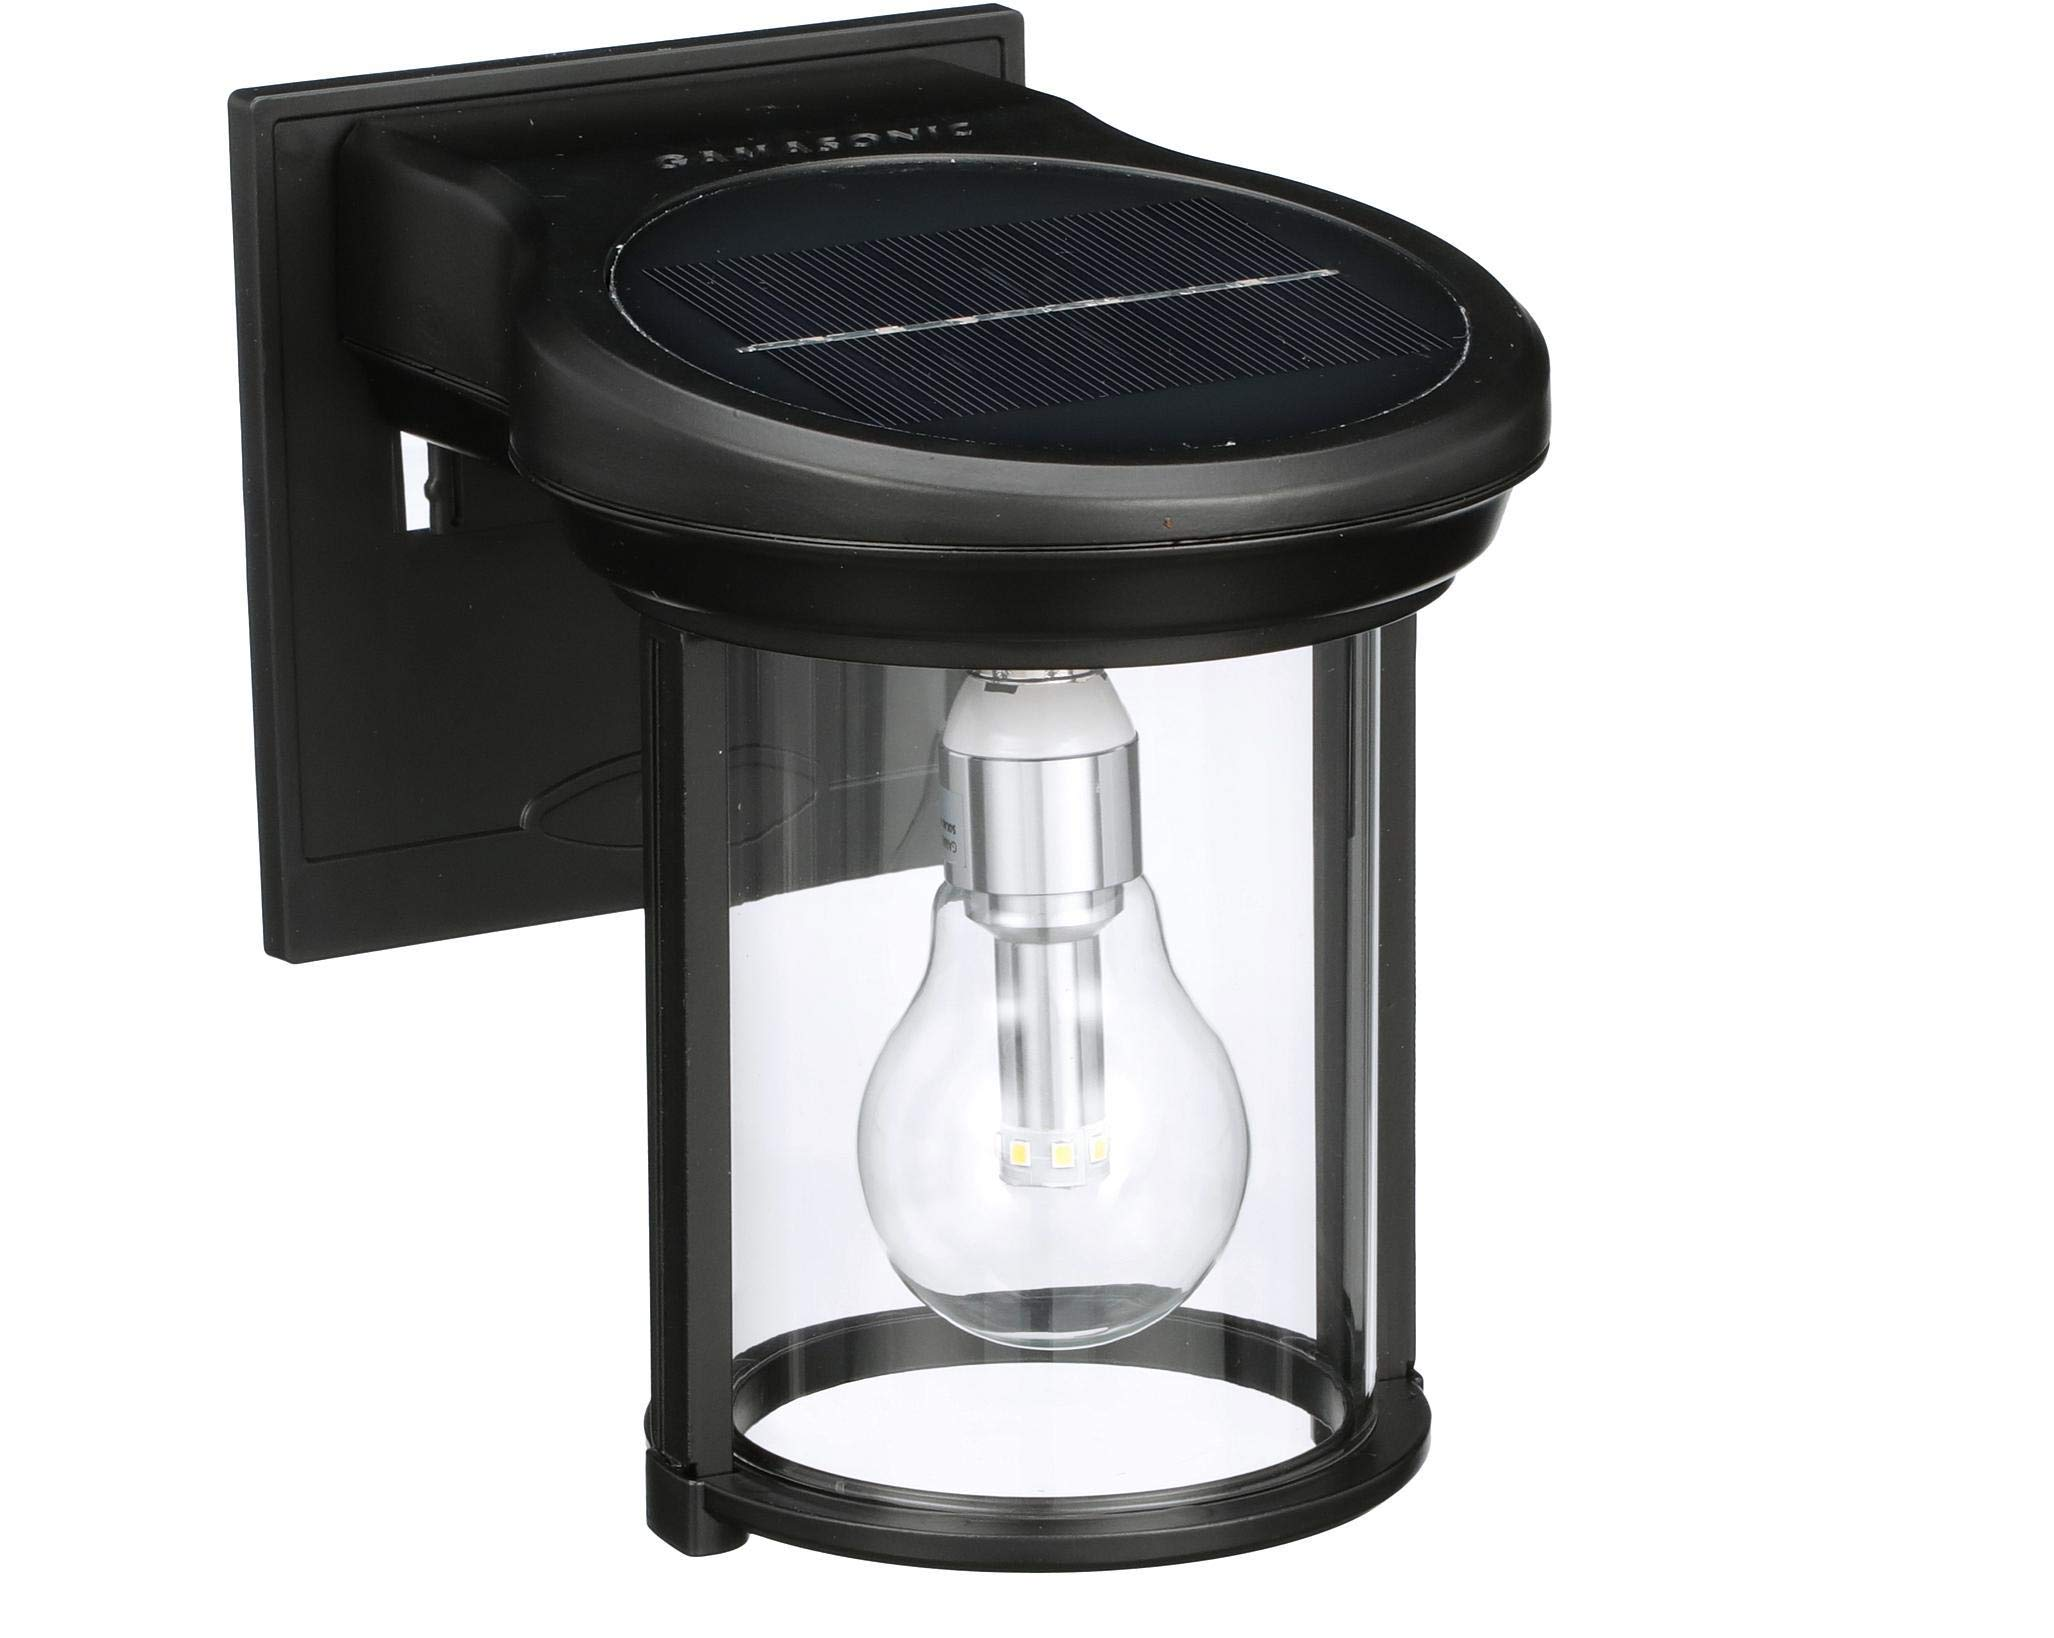 Gama Sonic GS-1B Coach Lantern Outdoor Solar Light Fixture, Wall Mount Sconce, Black by Gama Sonic